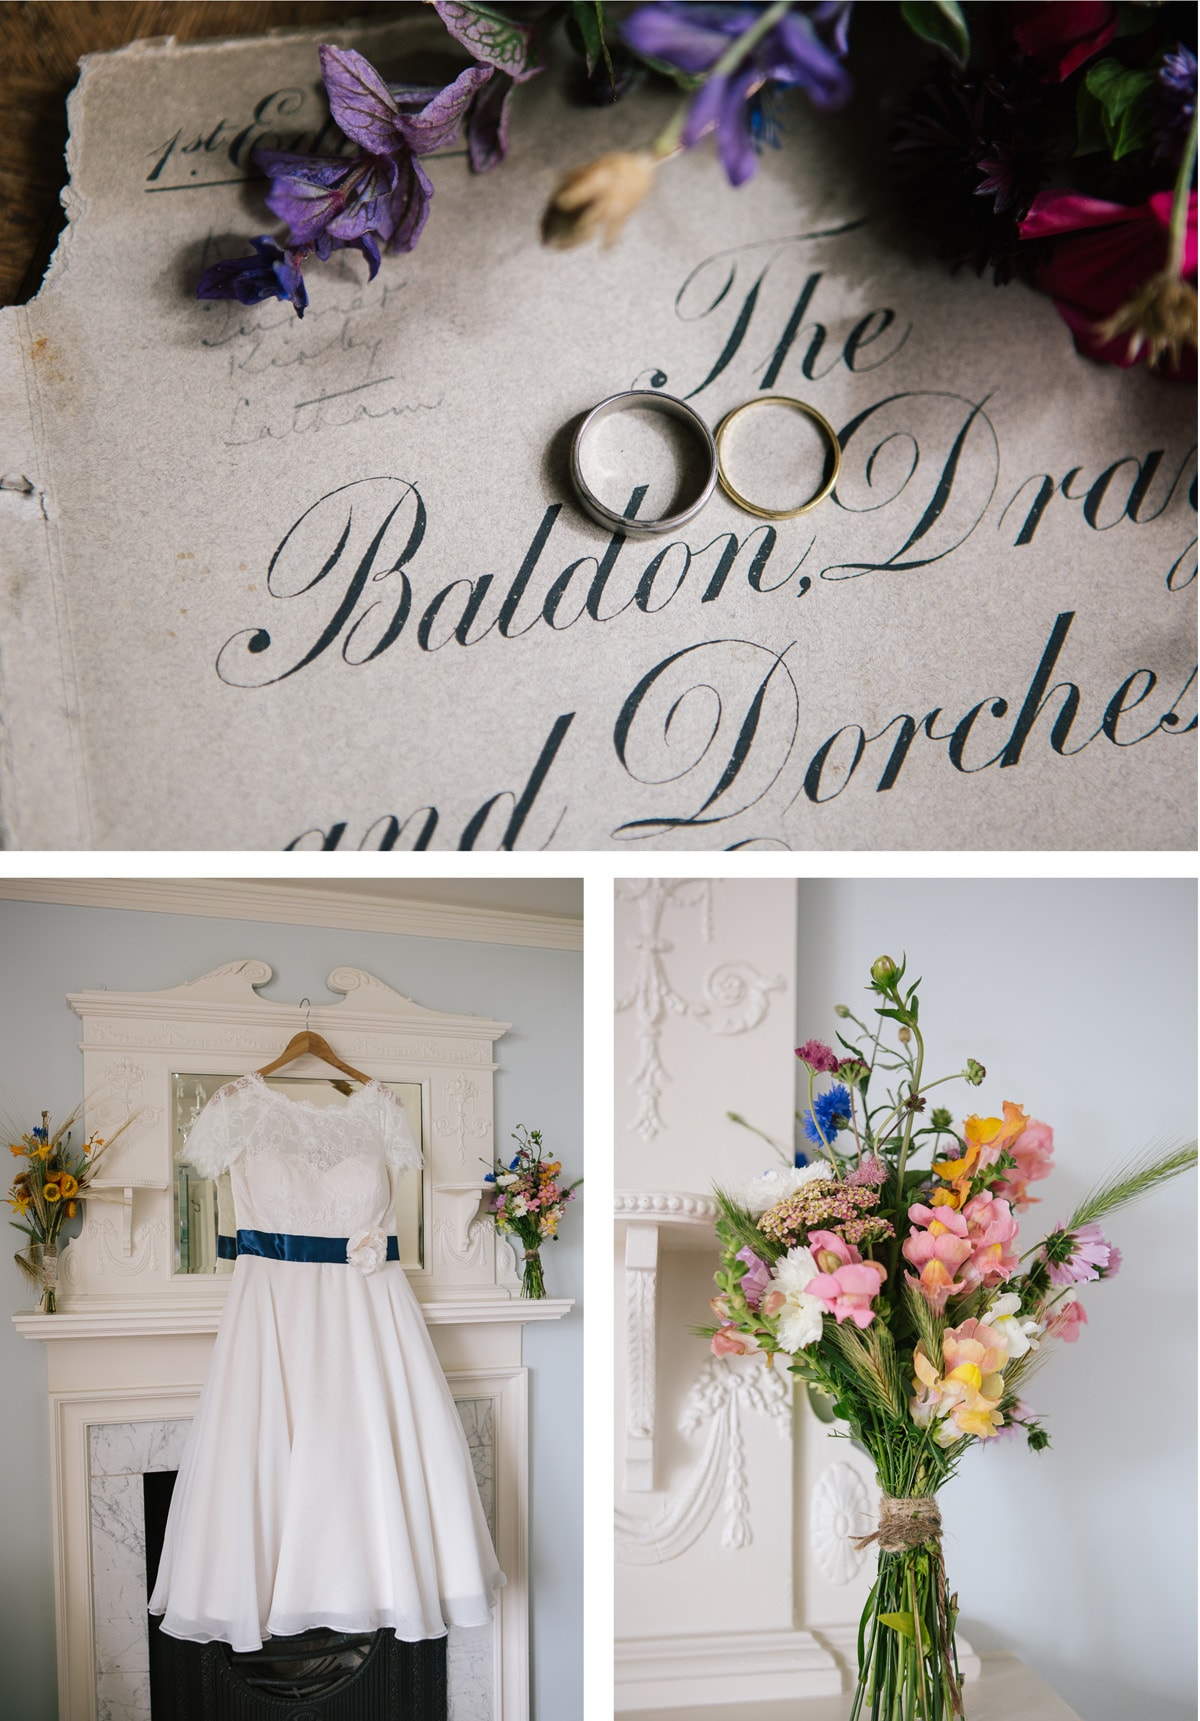 Clockwise from left: The bride's vintage tea length dress hangs above the fireplace; the wedding rings are placed on a calligraphied envelope surrounded by fresh flowers; one of the colourful bouquets tied with twine.